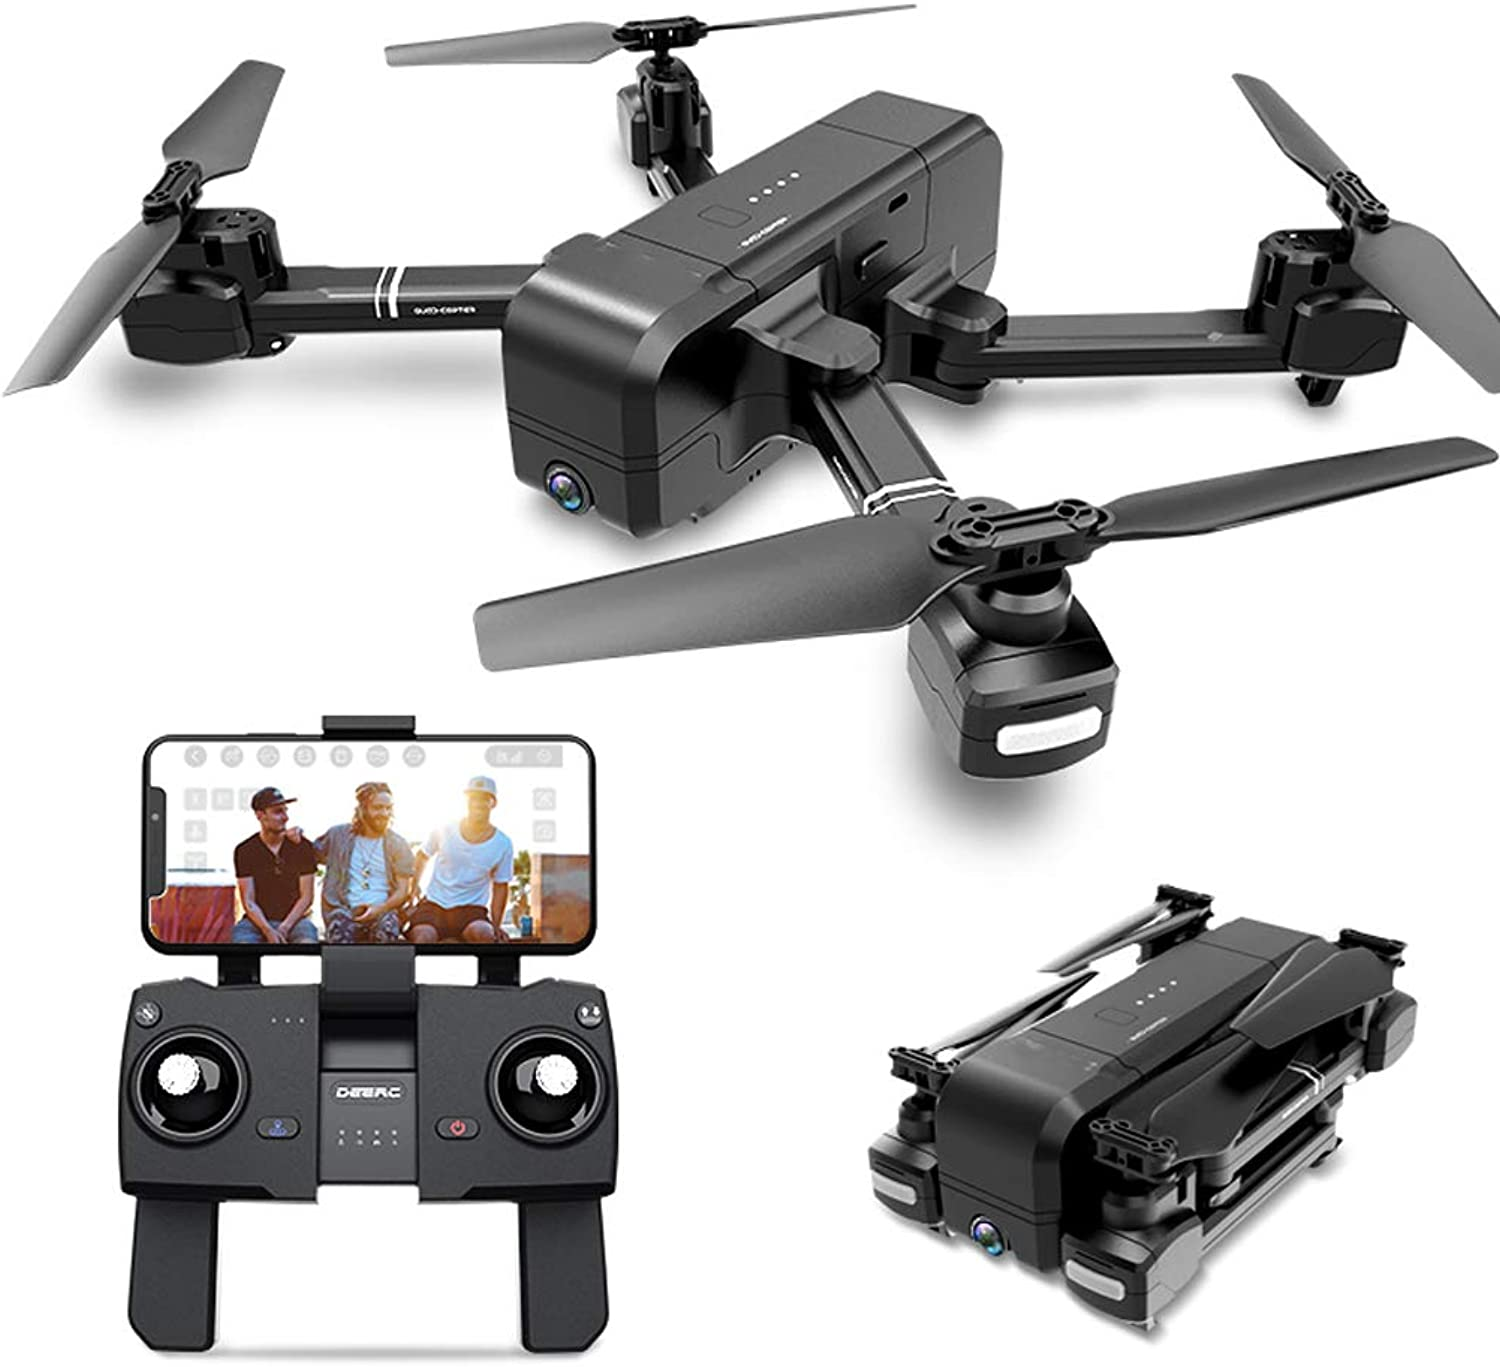 Foldable Quadcopter UAV 1080P HD Camera FPV WiFi Selfie live video, Gesture   120° Wide Angle Track Flight Height Hold Headless Mode One Button Back Follow Me Application Control